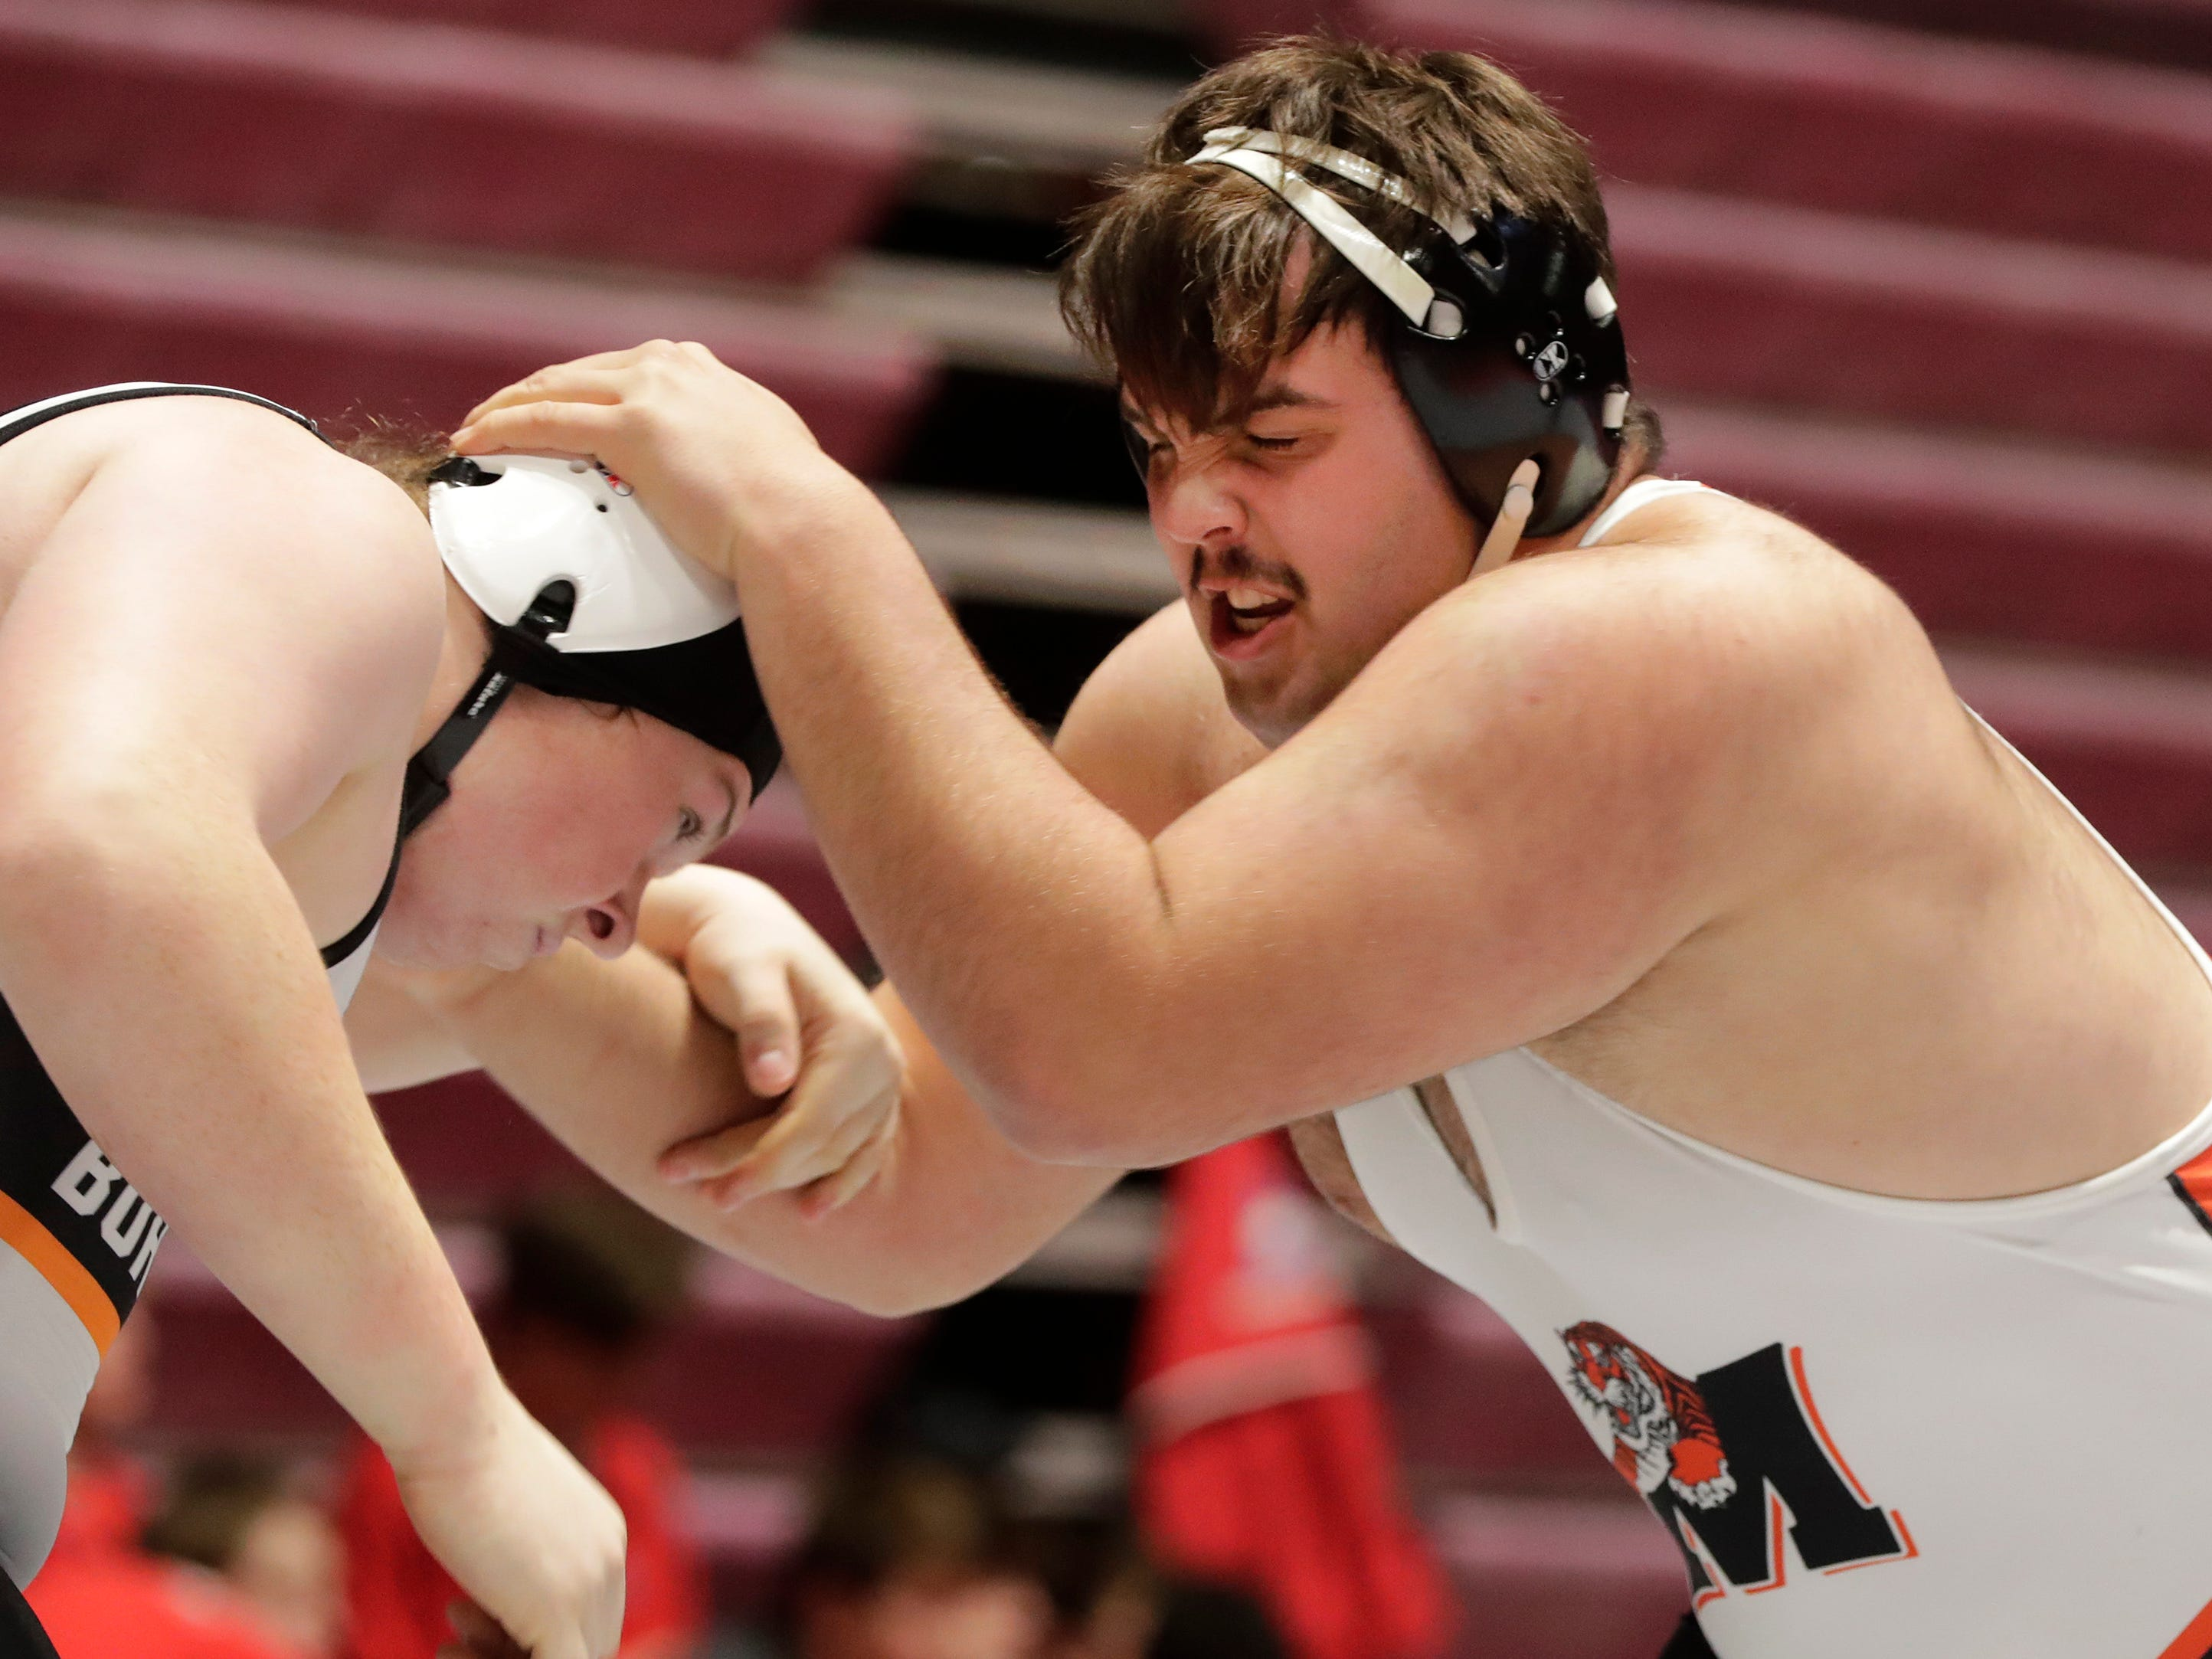 Marshfield's Samual Haessly, right, wrestles Burlington's Wyatt Hayes in a 285-pound match, Friday, March 1, 2019, in Madison, Wis.